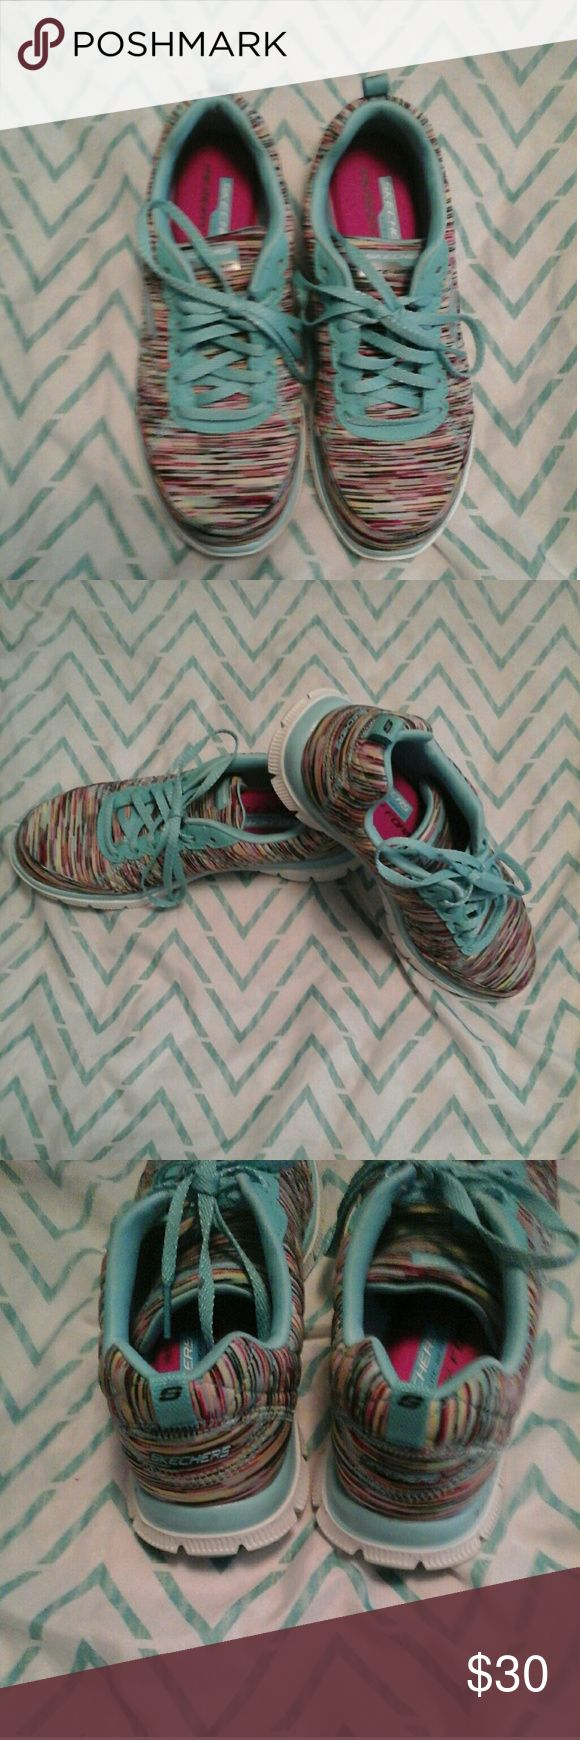 🌷Skechers Flex Sole 👟Show off some multi colors an sporty comfort in these Skechers Flex Sole Sneakers.Size 7,blue shoe laces ,memory foam footbed.Excellent condition,no holes,shoes looks new still,  smoke free an pet free home. Skechers Shoes Sneakers